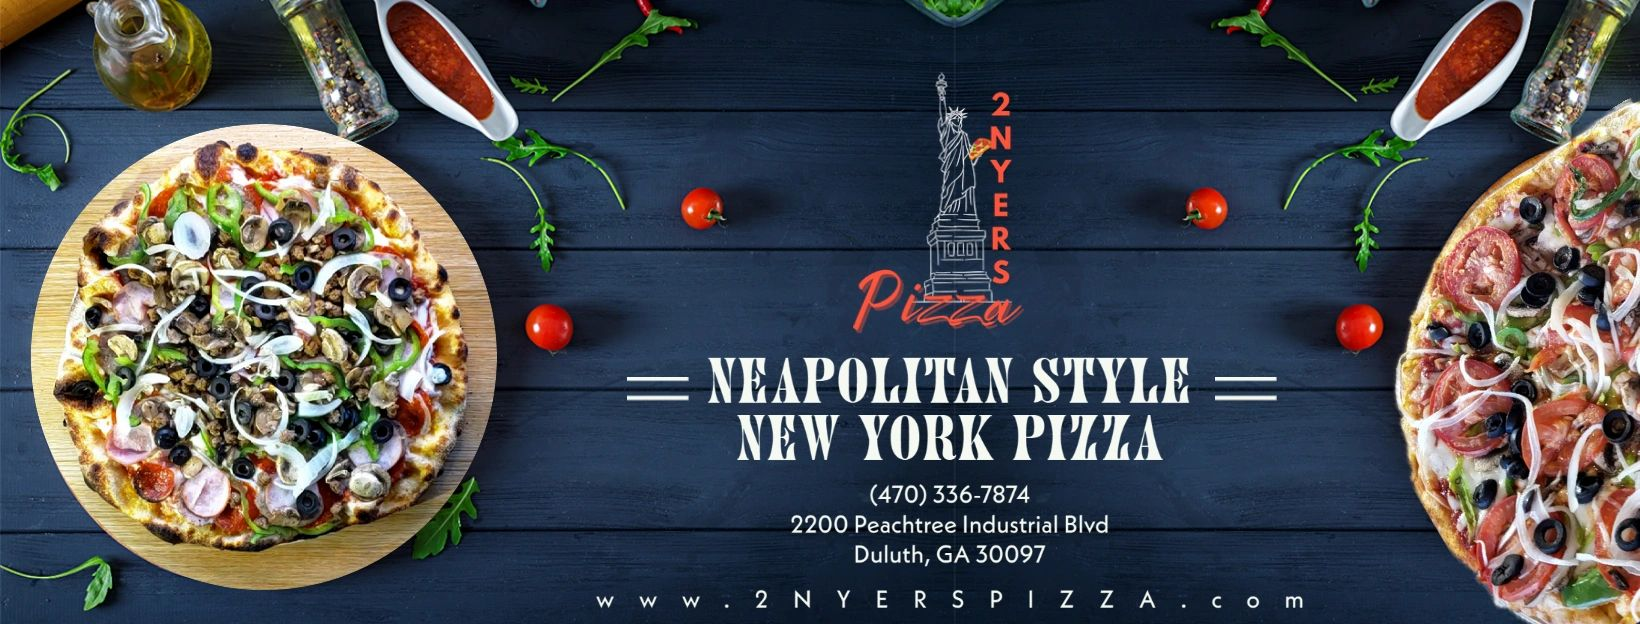 2 NYers Pizza - Pizza Restaurant - Duluth, Georgia